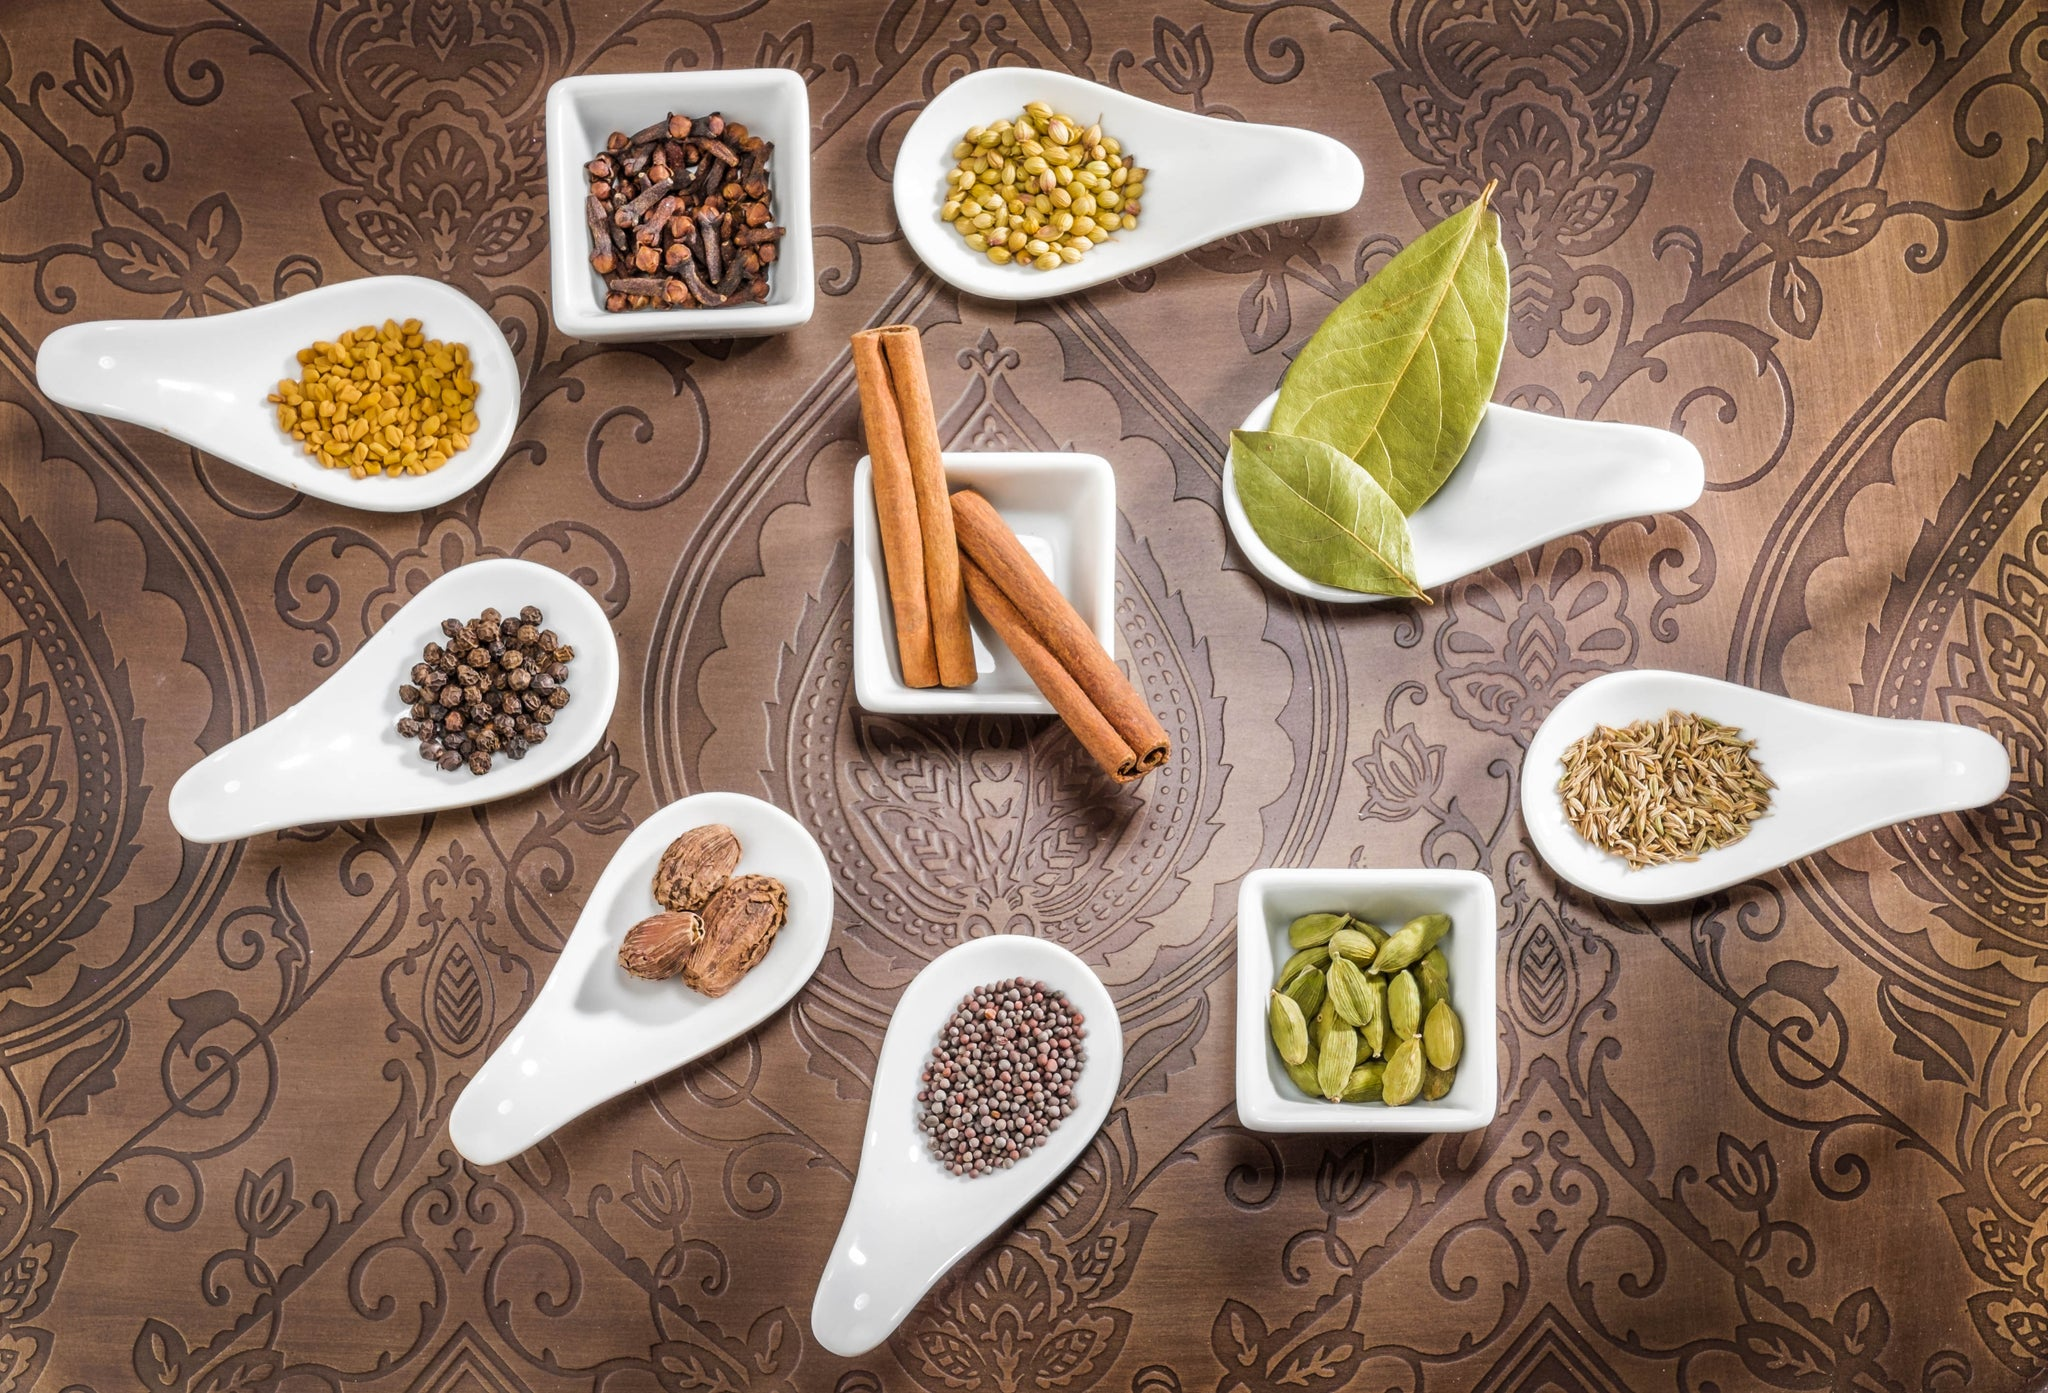 Indian spices and seasonings